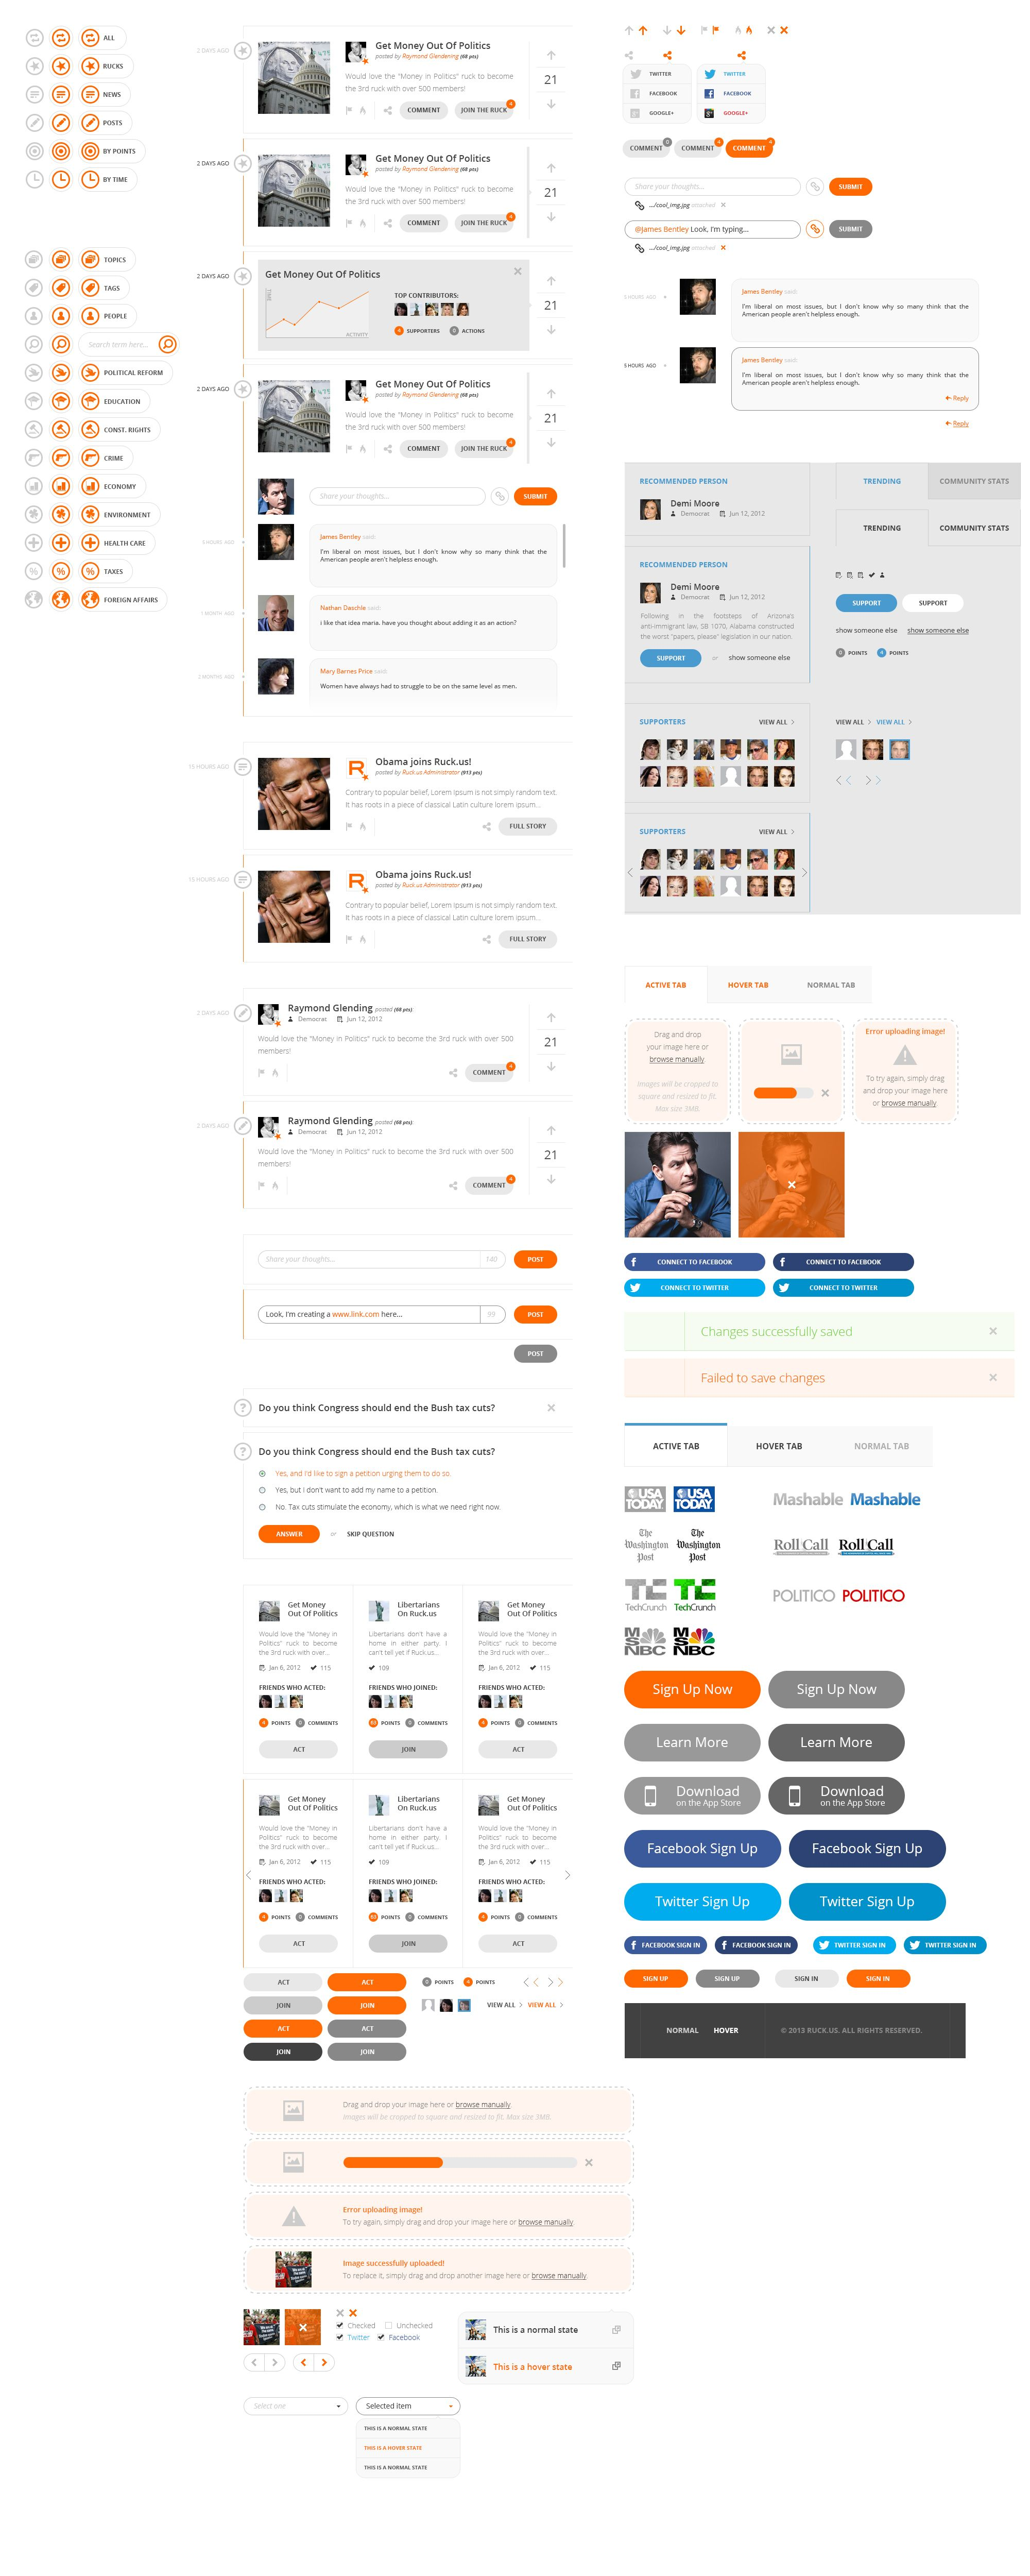 Pin by Hannah on UX/UI | Interface design, Web style guide